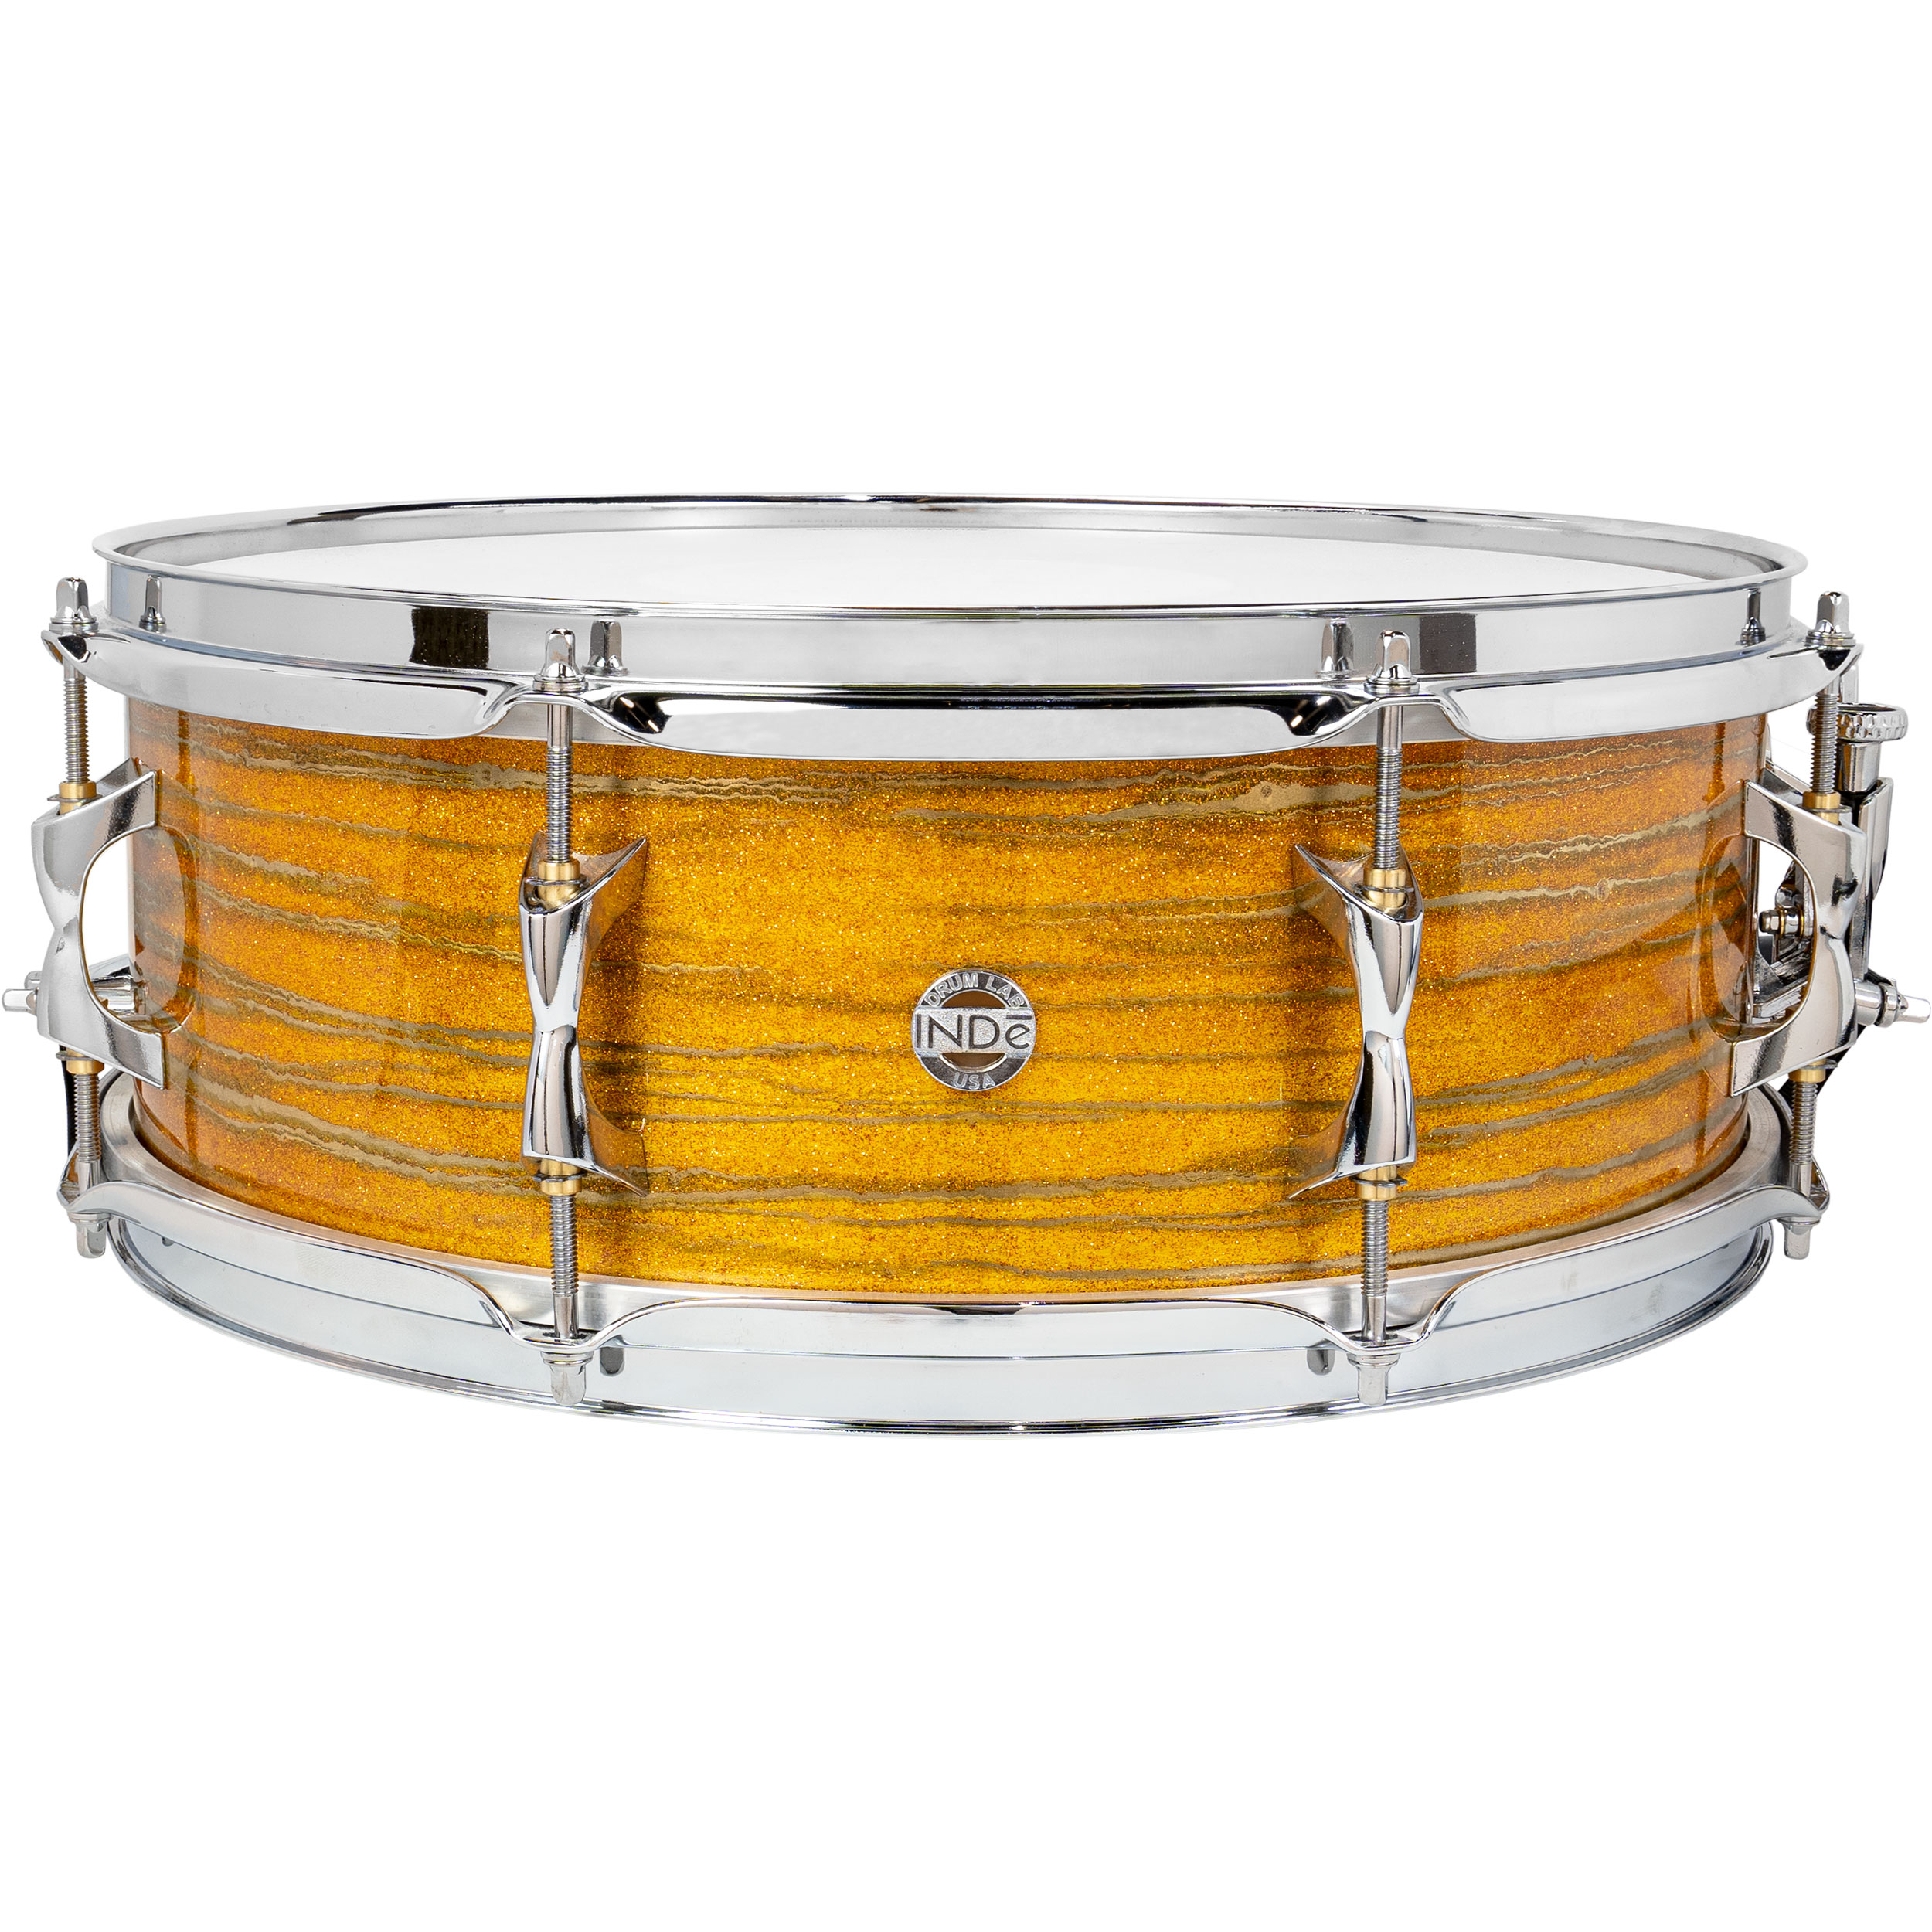 """Inde 5.5"""" x 15"""" ResoArmor Snare Drum in Yellow Sparkle with Gold Swirl (Demo)"""